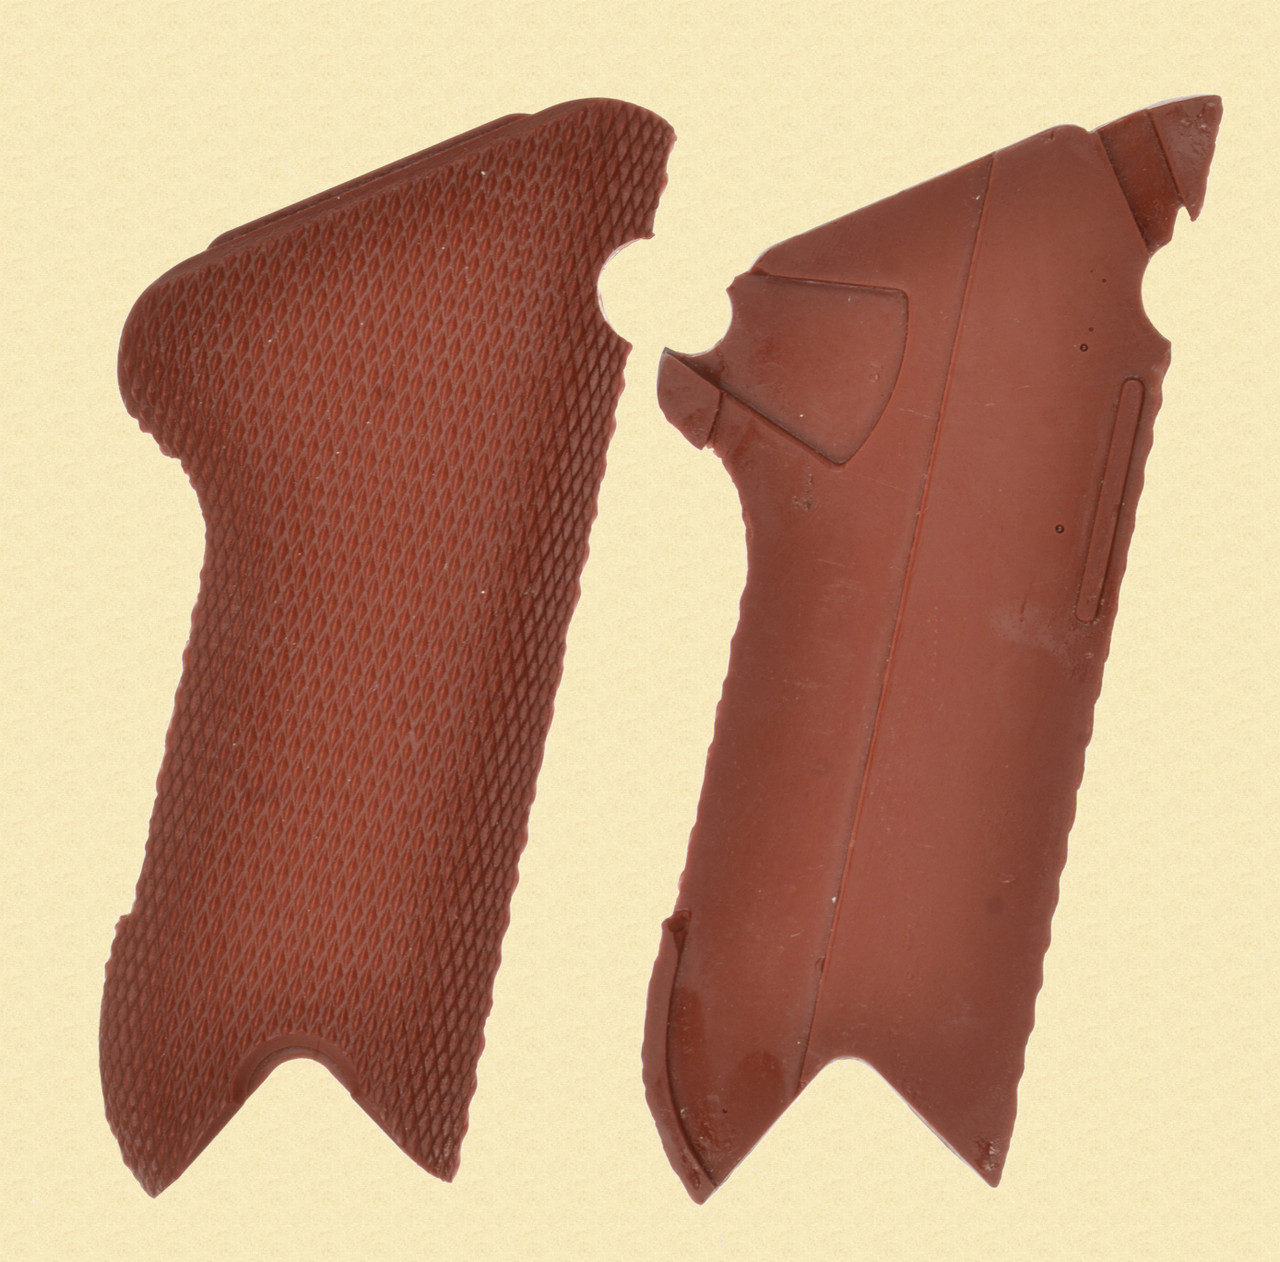 SWISS 29 LUGER RED GRIPS - C46978